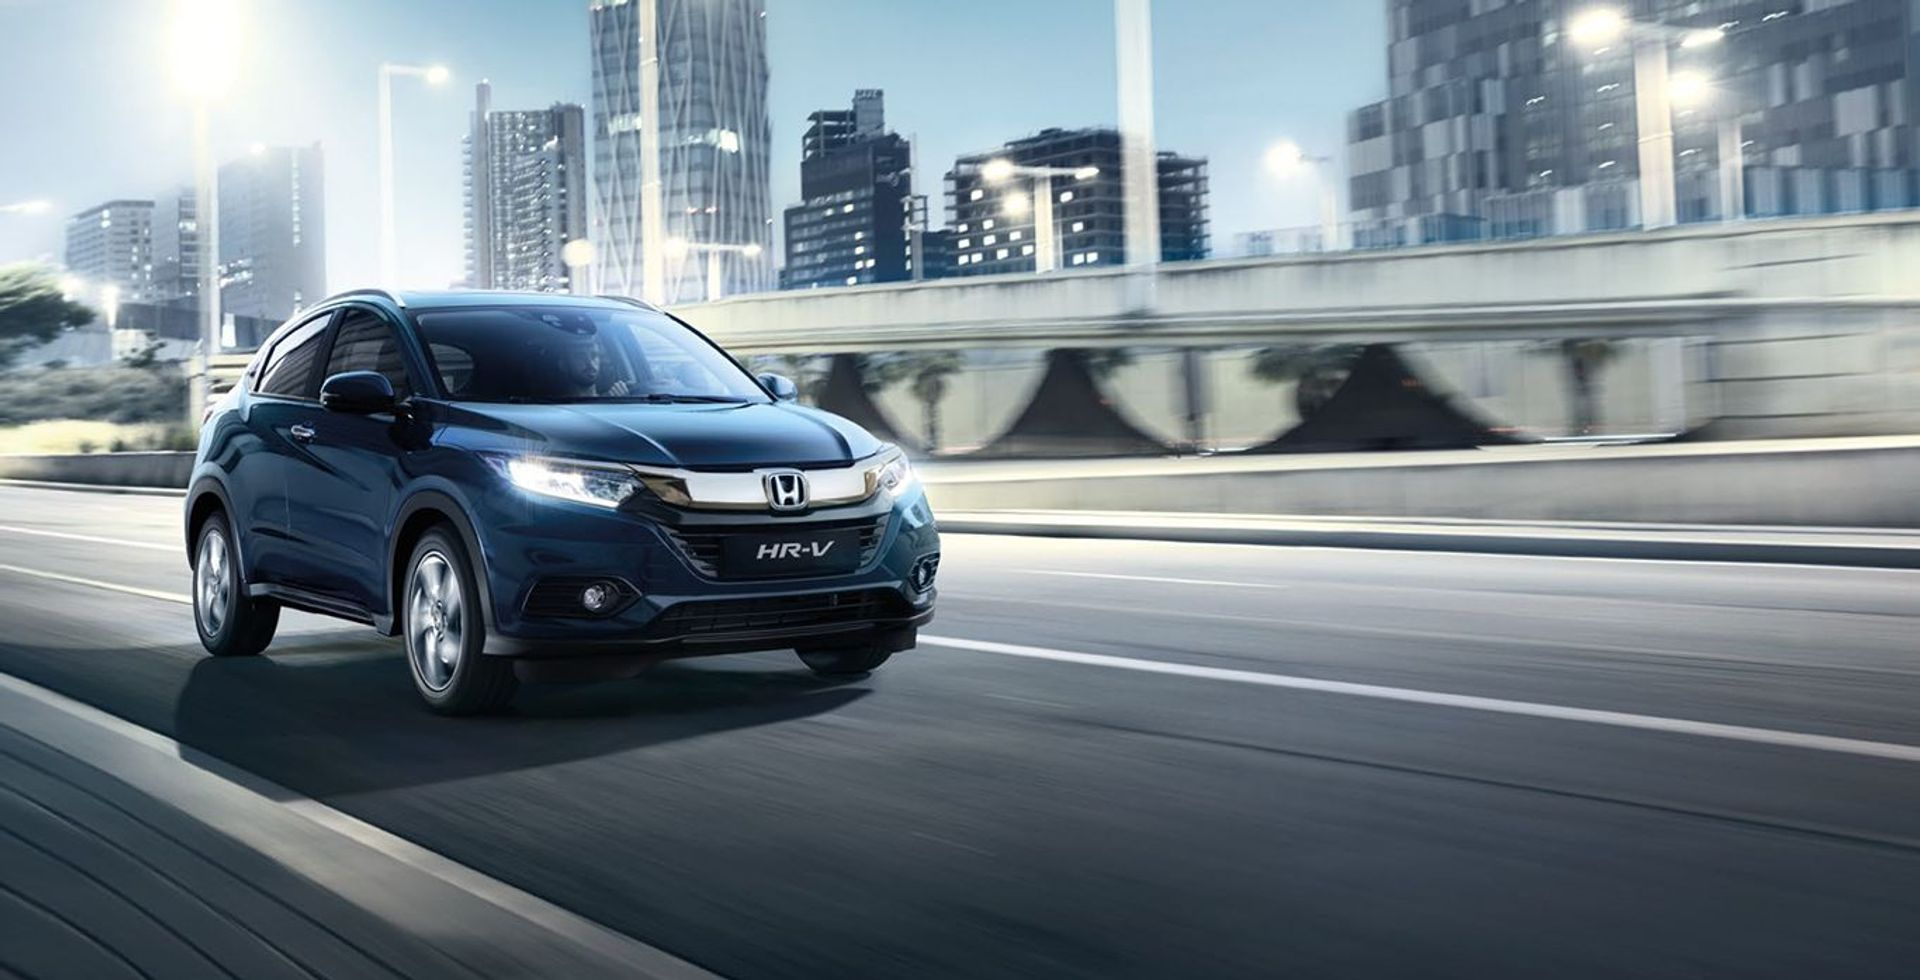 Honda HR-V VTEC Turbo image